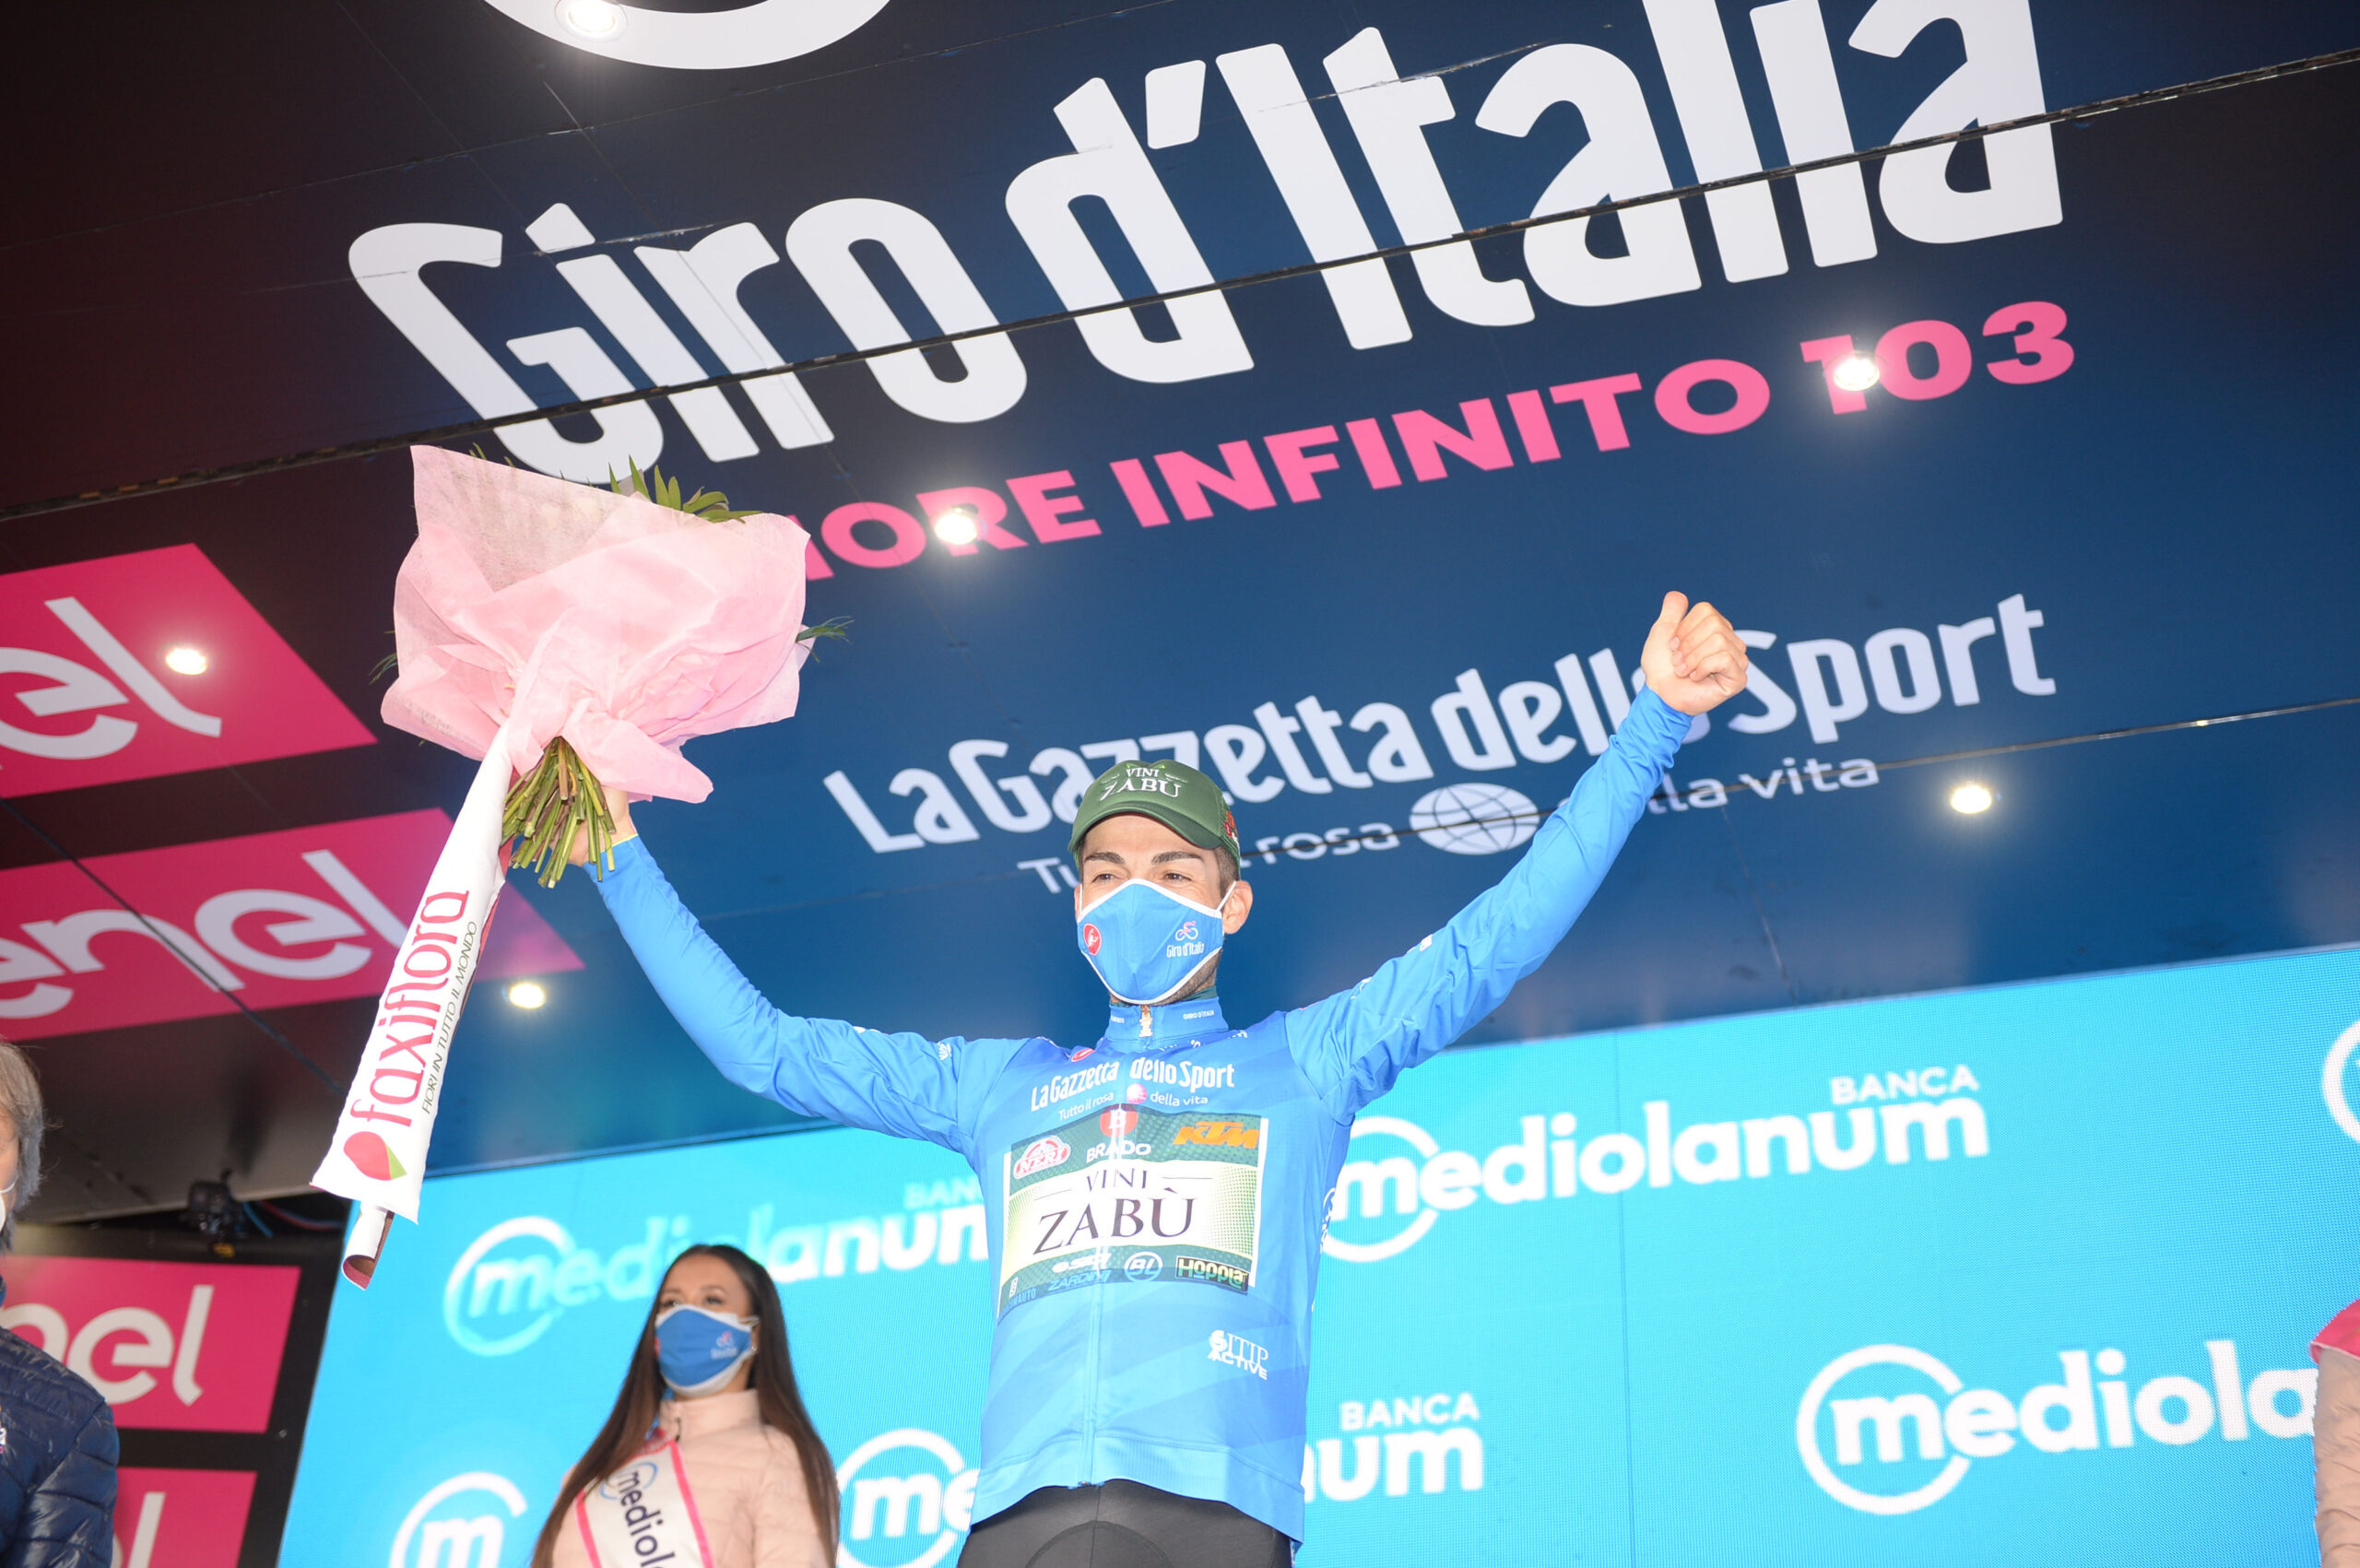 GIRO D'ITALIA: GIOVANNI VISCONTI IS THE NEW KING OF THE MOUNTAIN